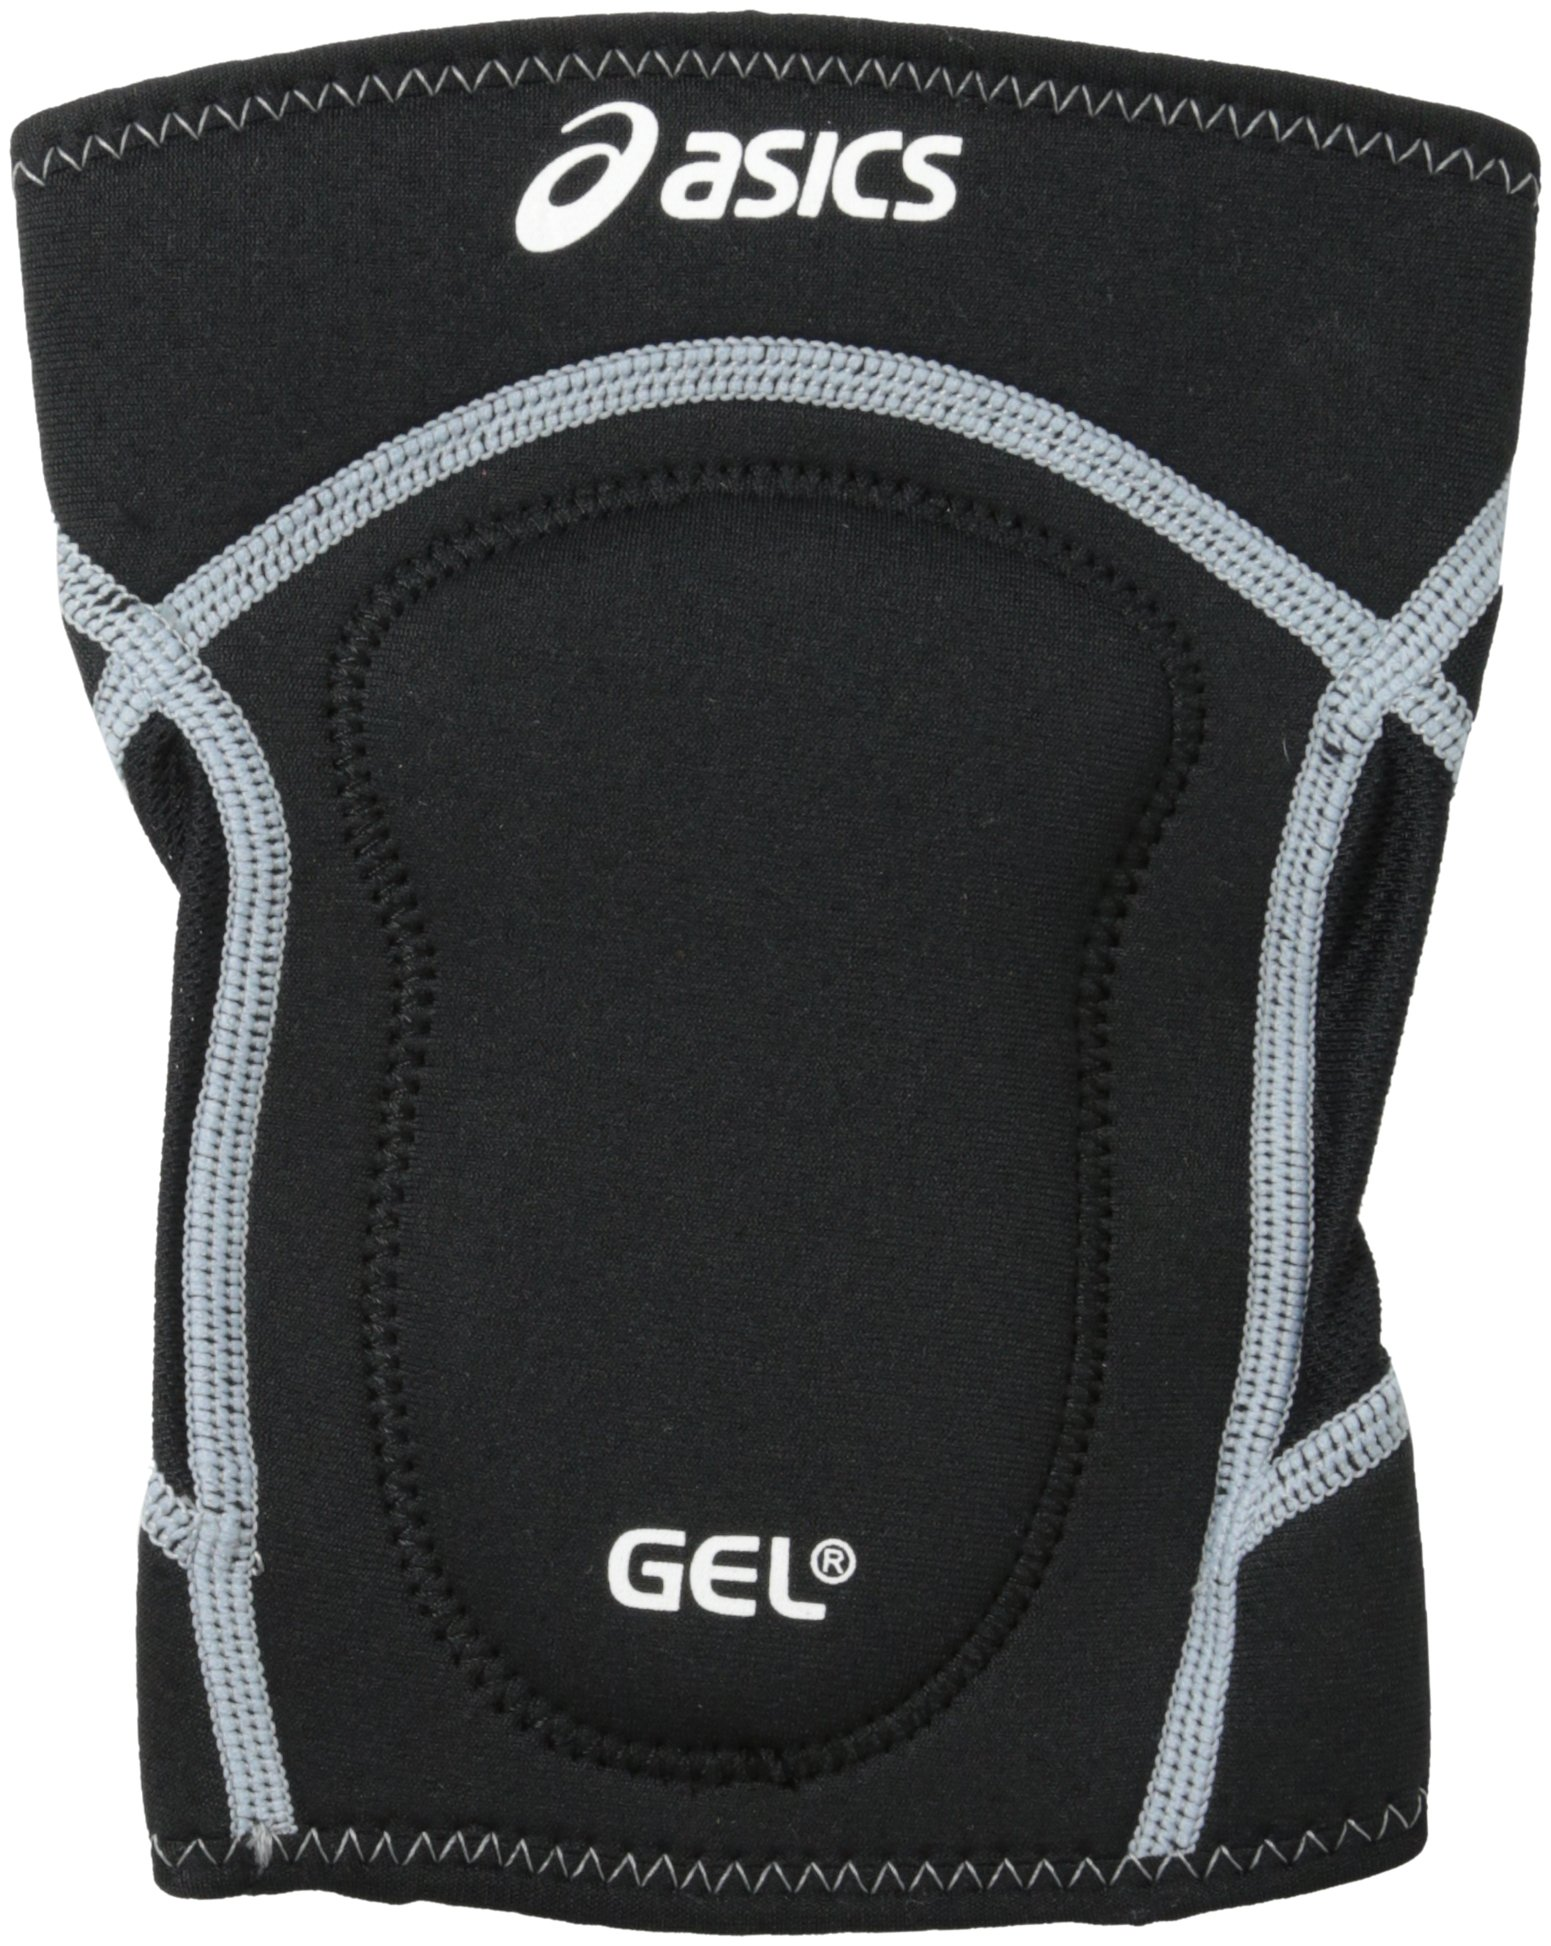 ASICS Gel sleeve Black Medium